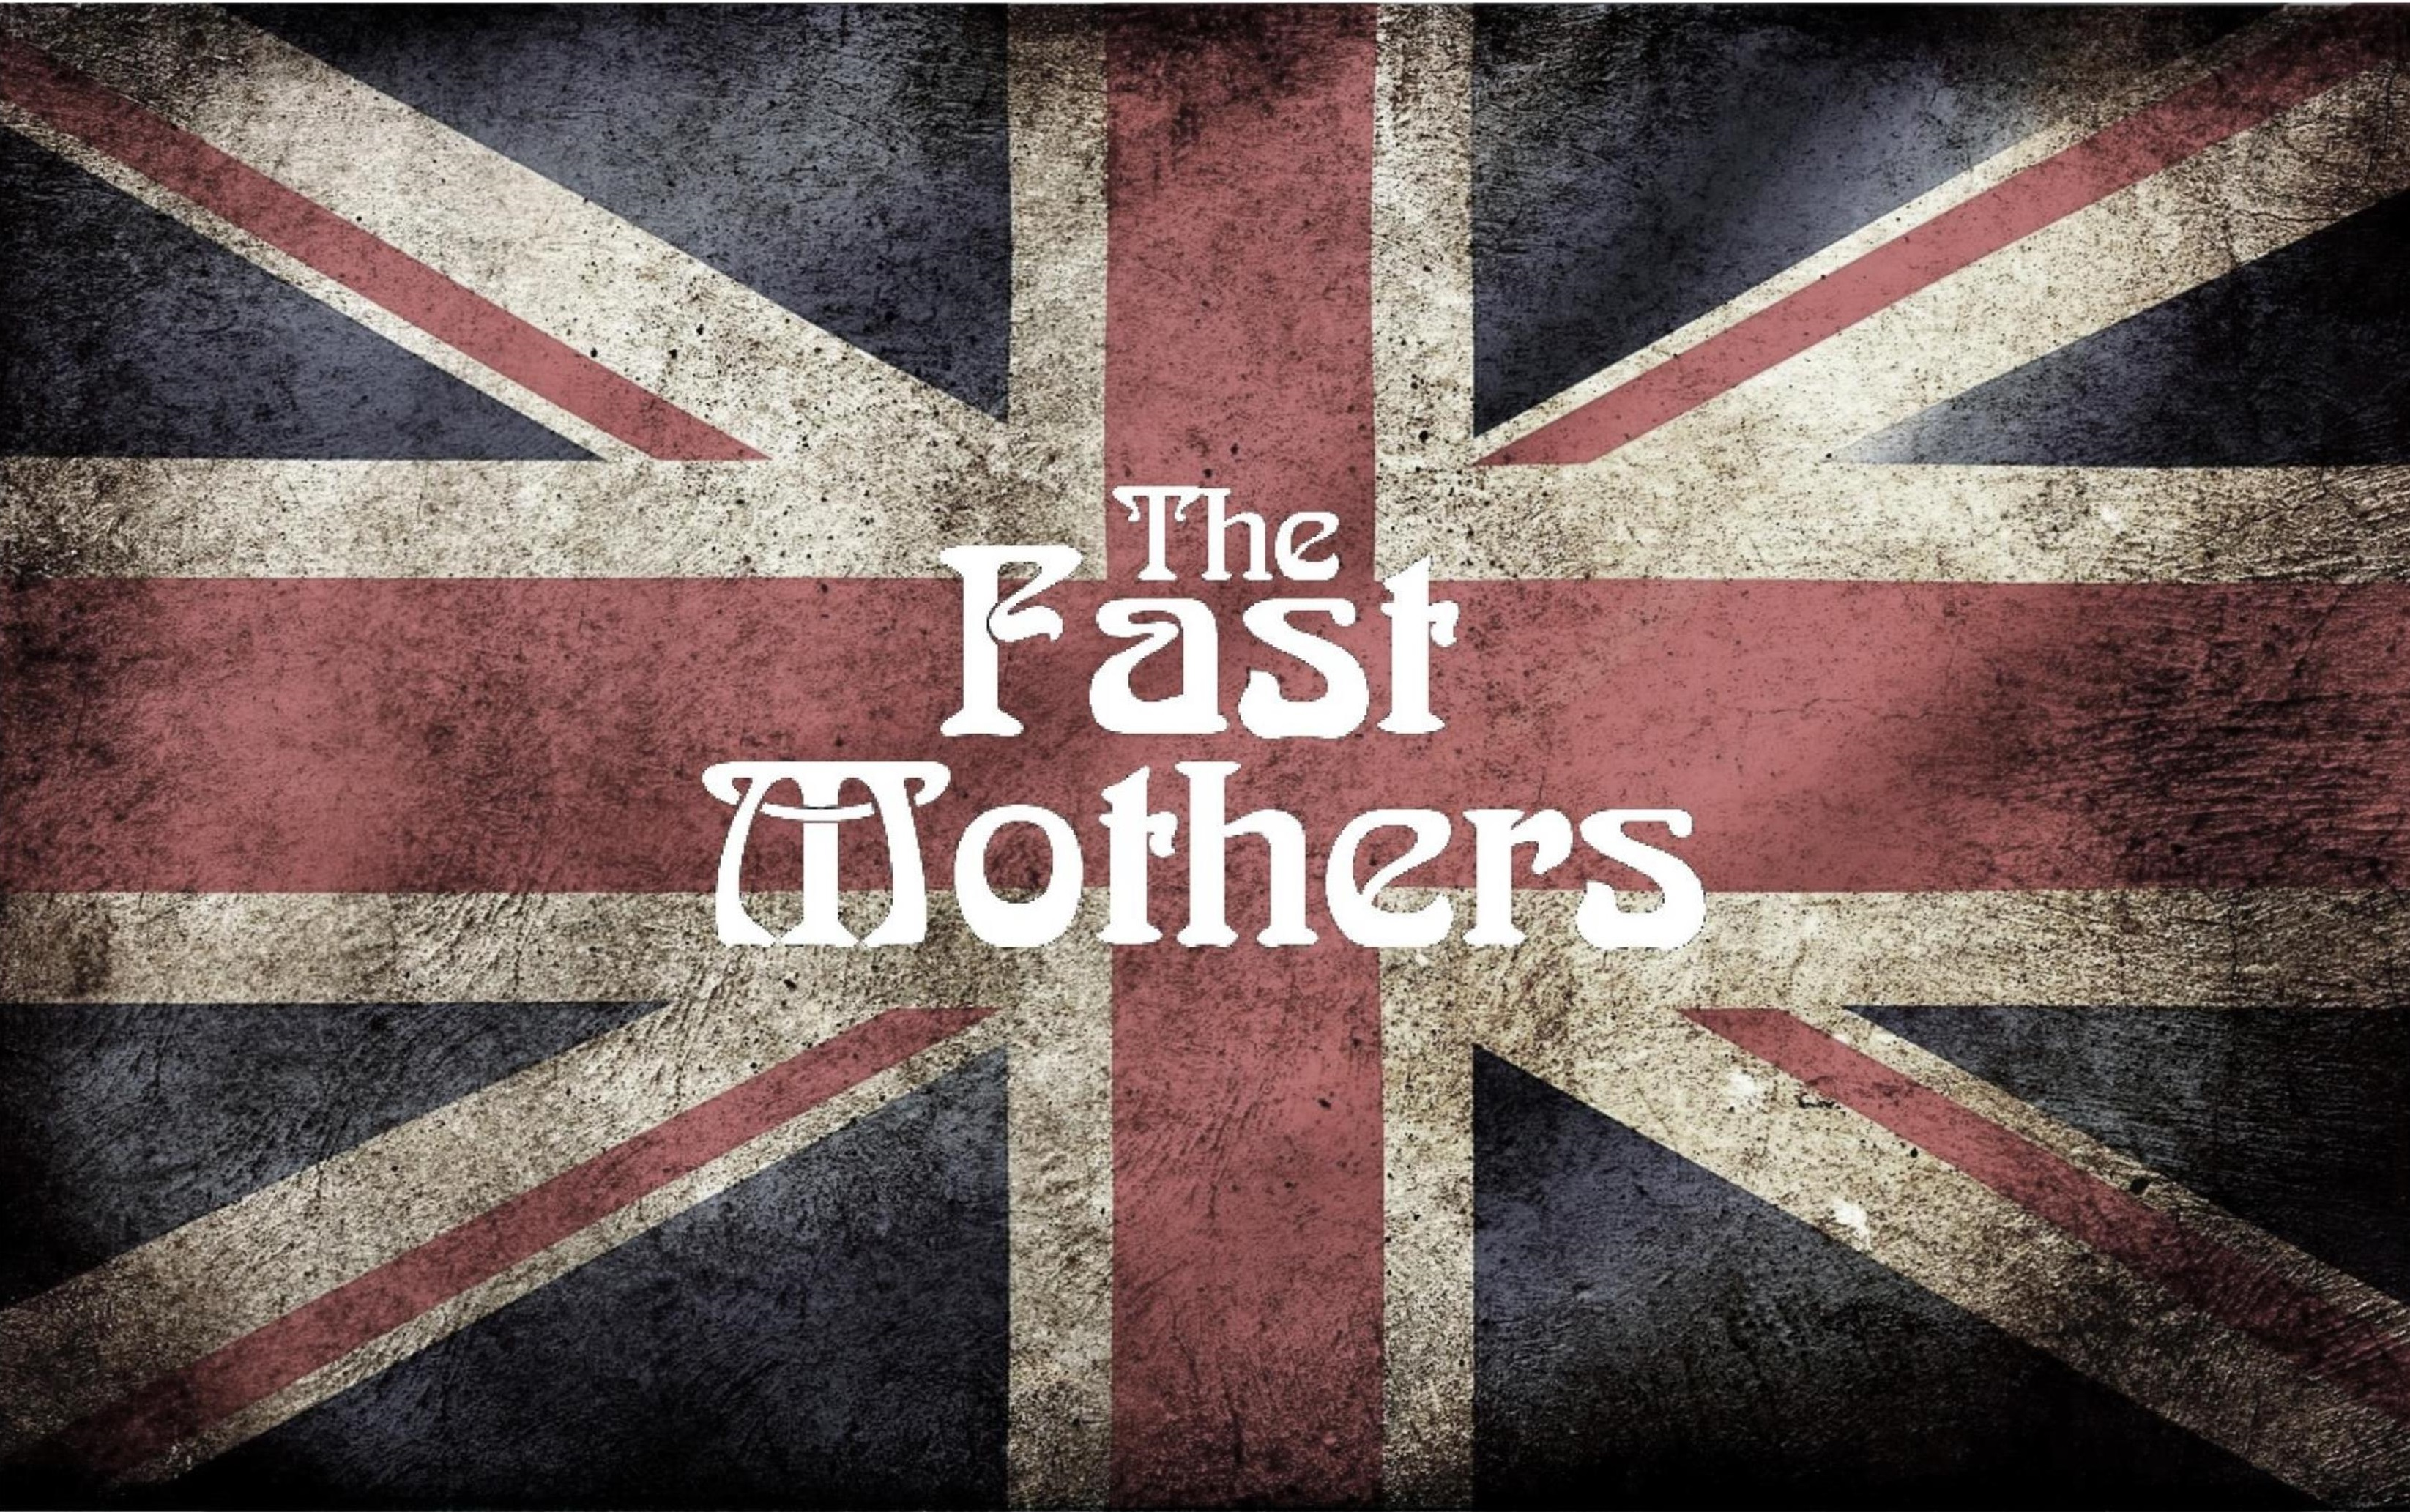 Fast Mothers Union Jack4